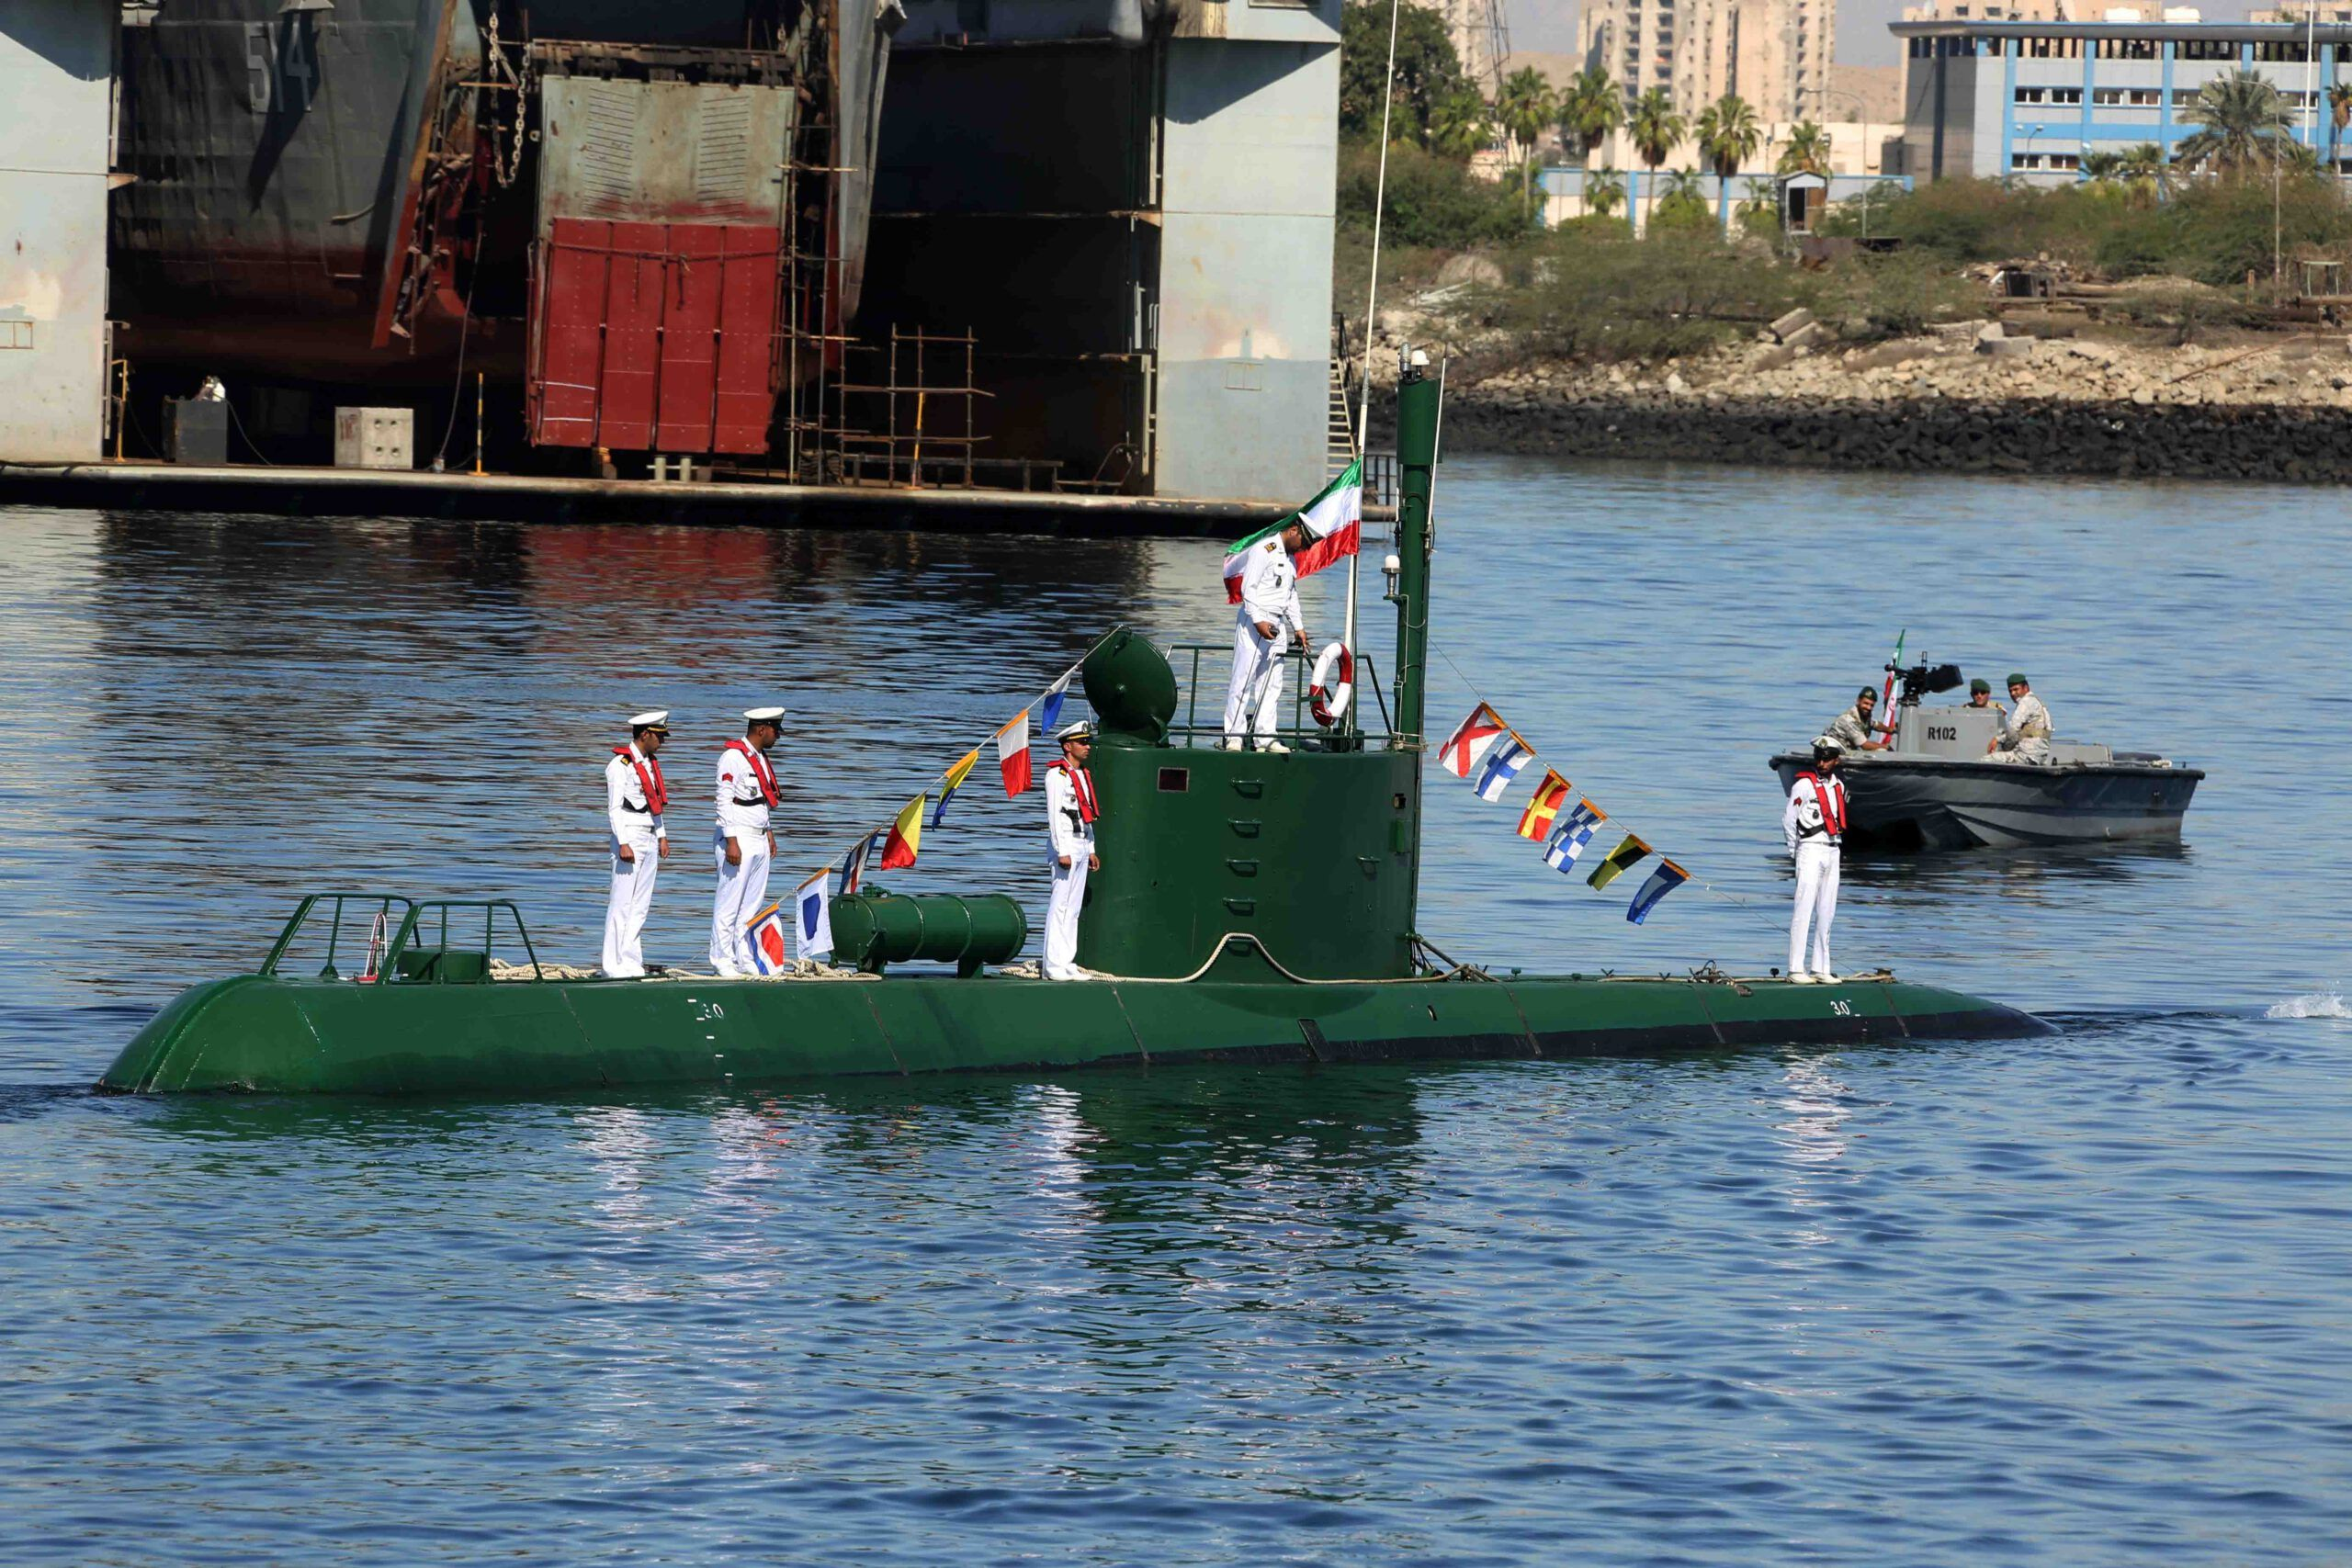 It is not clear whether Iran meant that two new units were delivered or just two submarines already in service were transferred from other locations. Last year it was announced that a 527t FATEH-class submarine would join the fleet soon, and due to delays with the FATEH-class, this project has been temporarily decelerated.